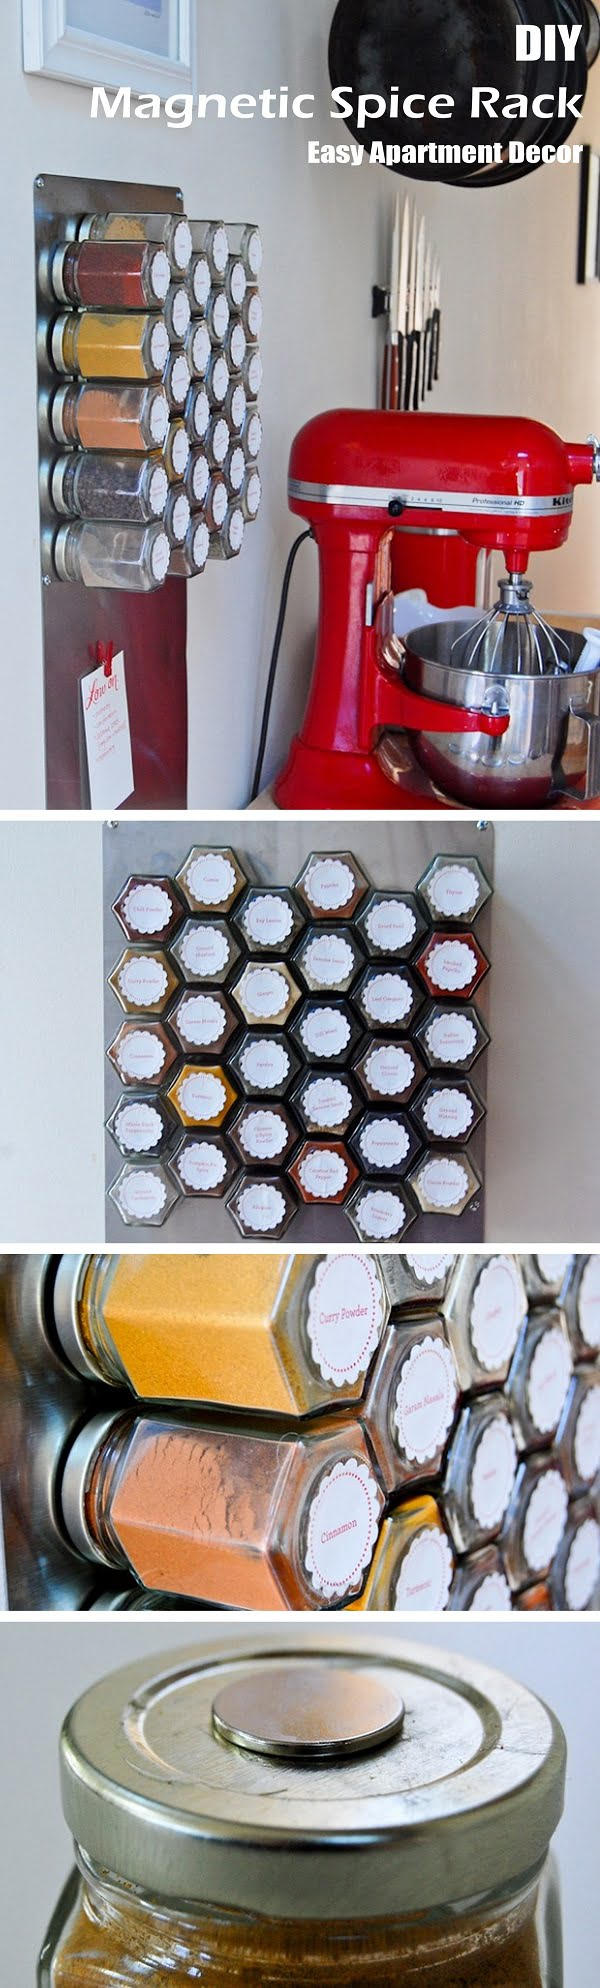 Check out this easy idea on how to make a #DIY magnetic spice rack for #kitchen and #apartment #homedecor on a #budget